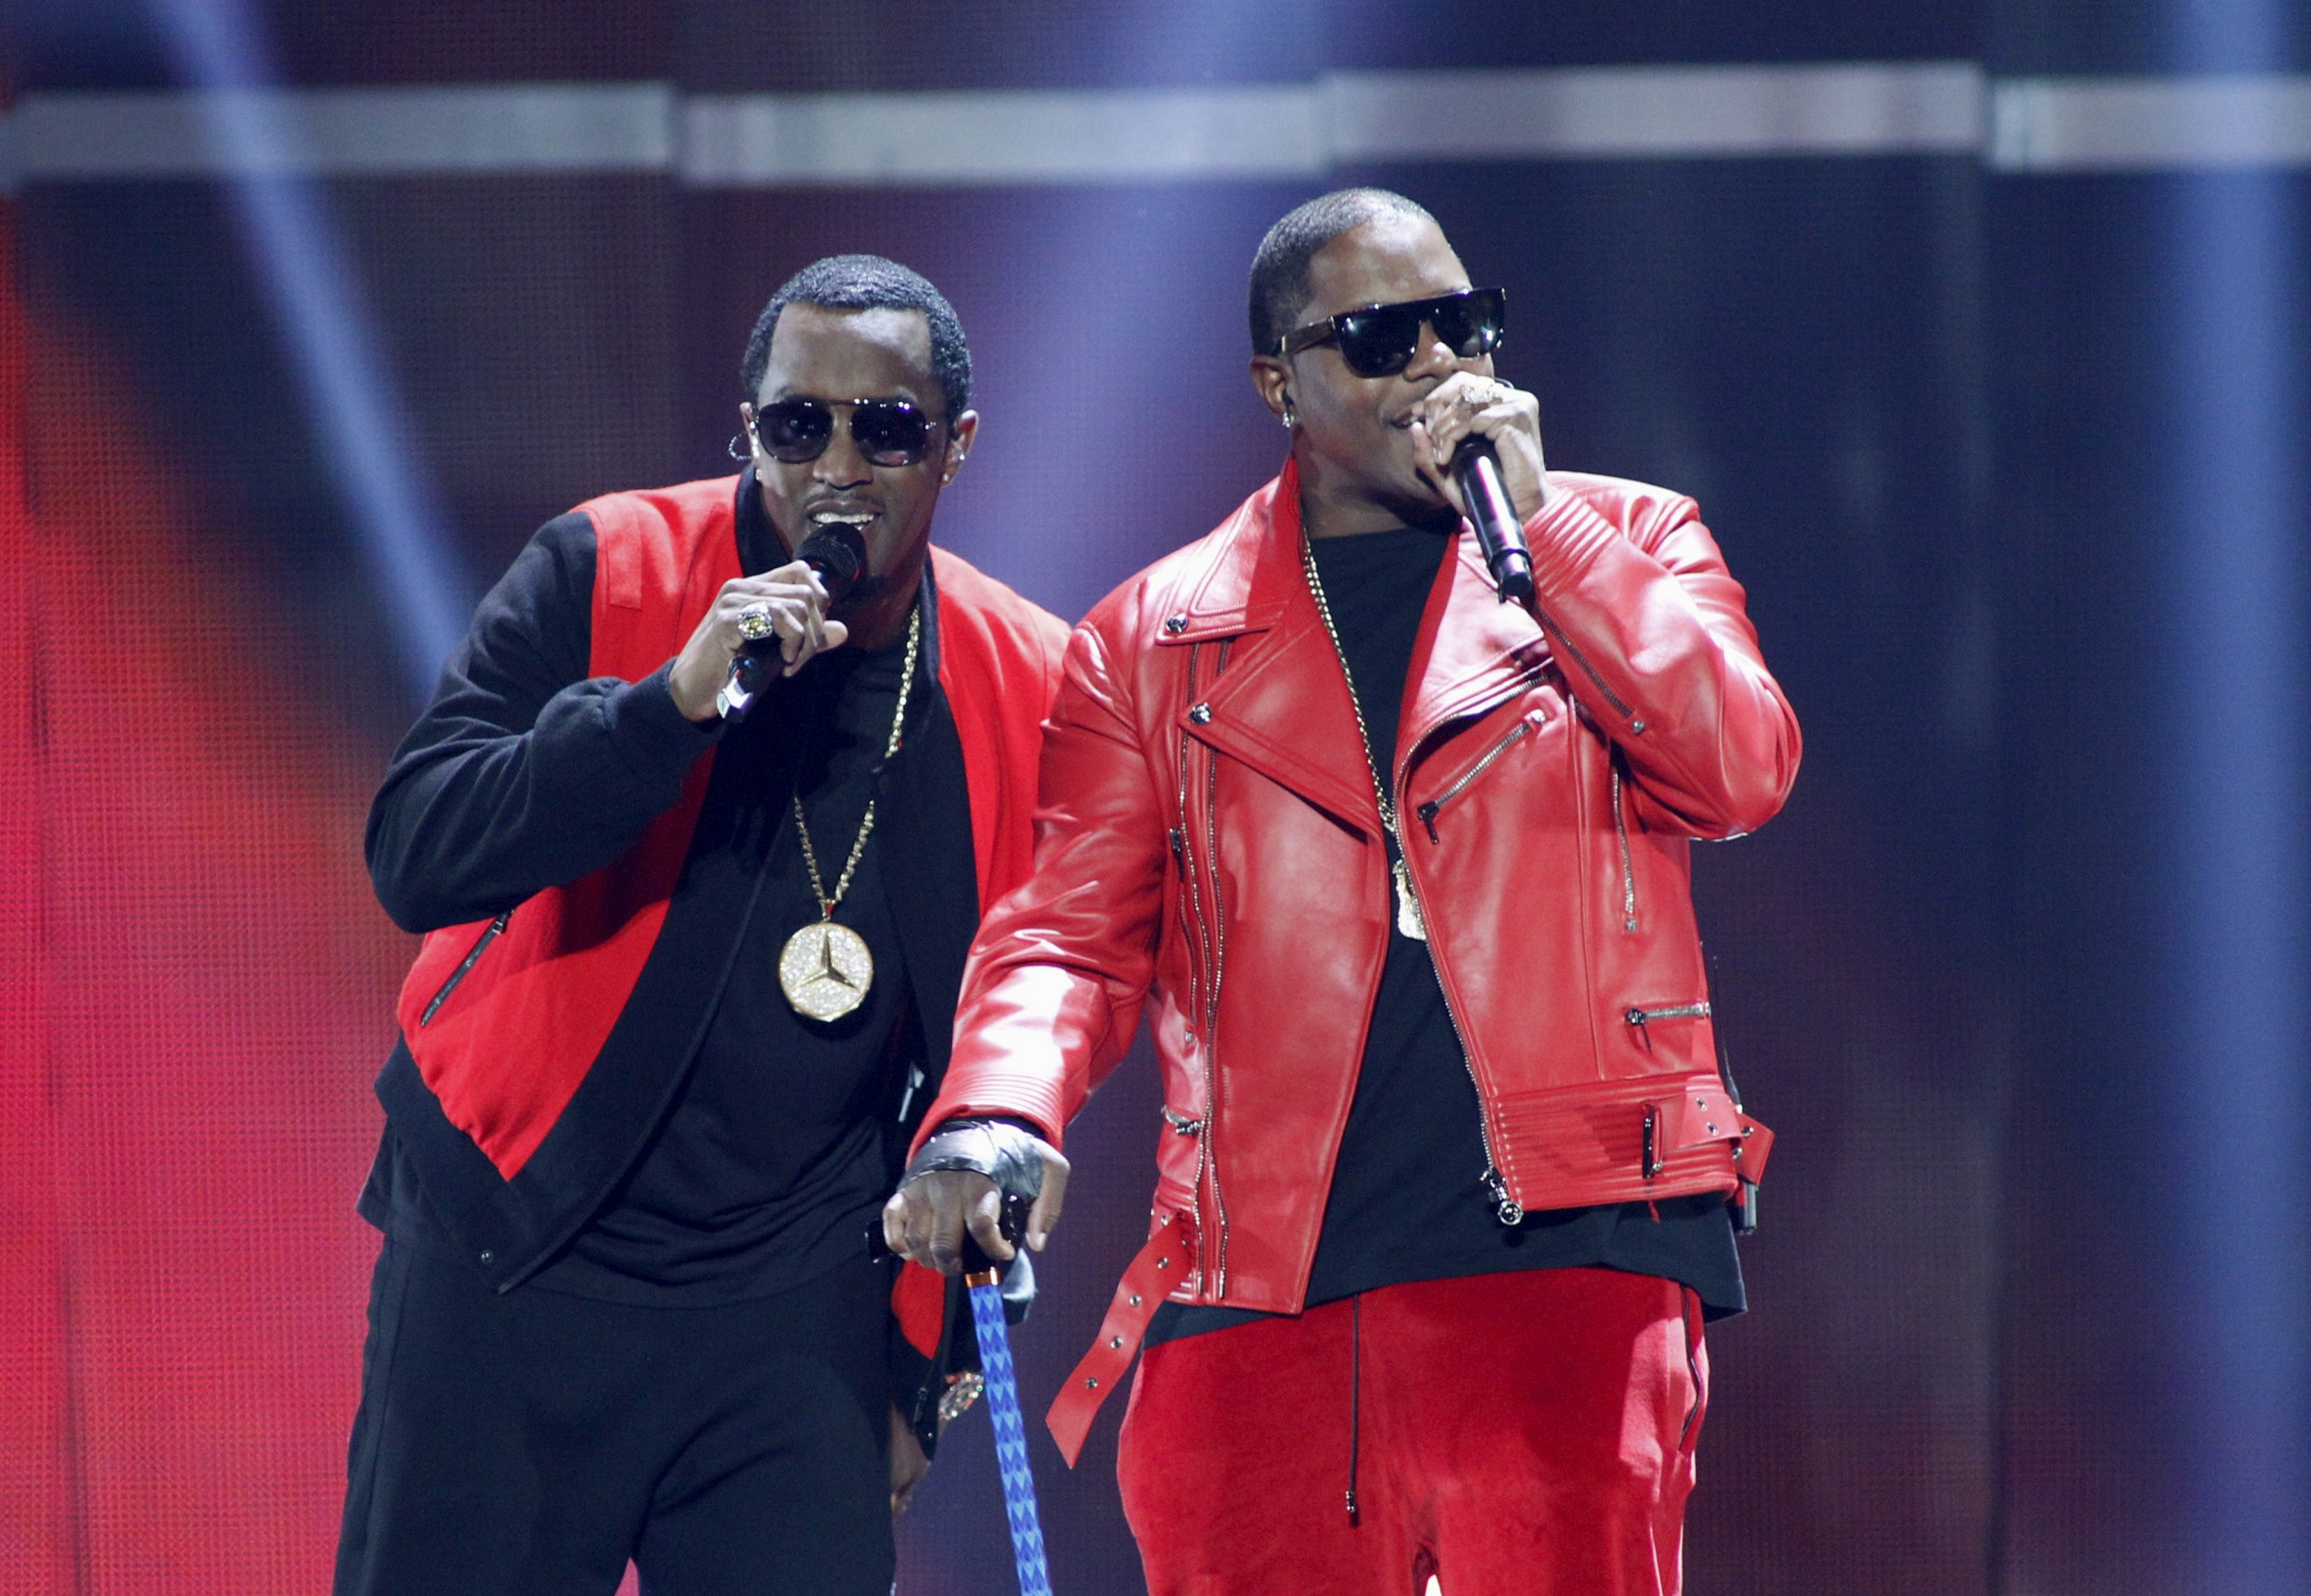 Music School Rankings >> Puff Daddy Announces Bad Boy Reunion Concert to Celebrate ...